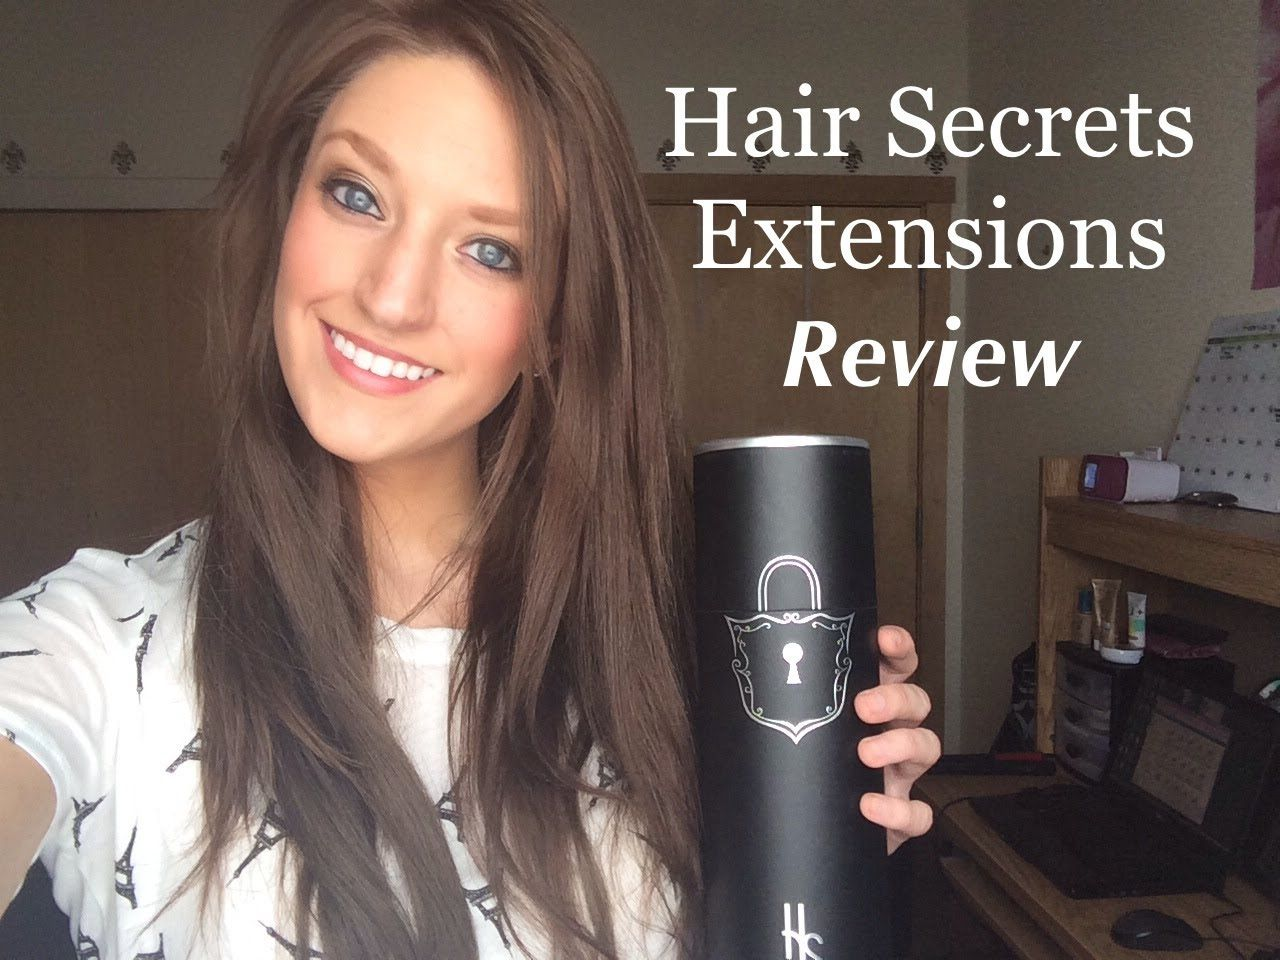 Hair Secrets Extensions Review Hair Nails And Makeup Pinterest